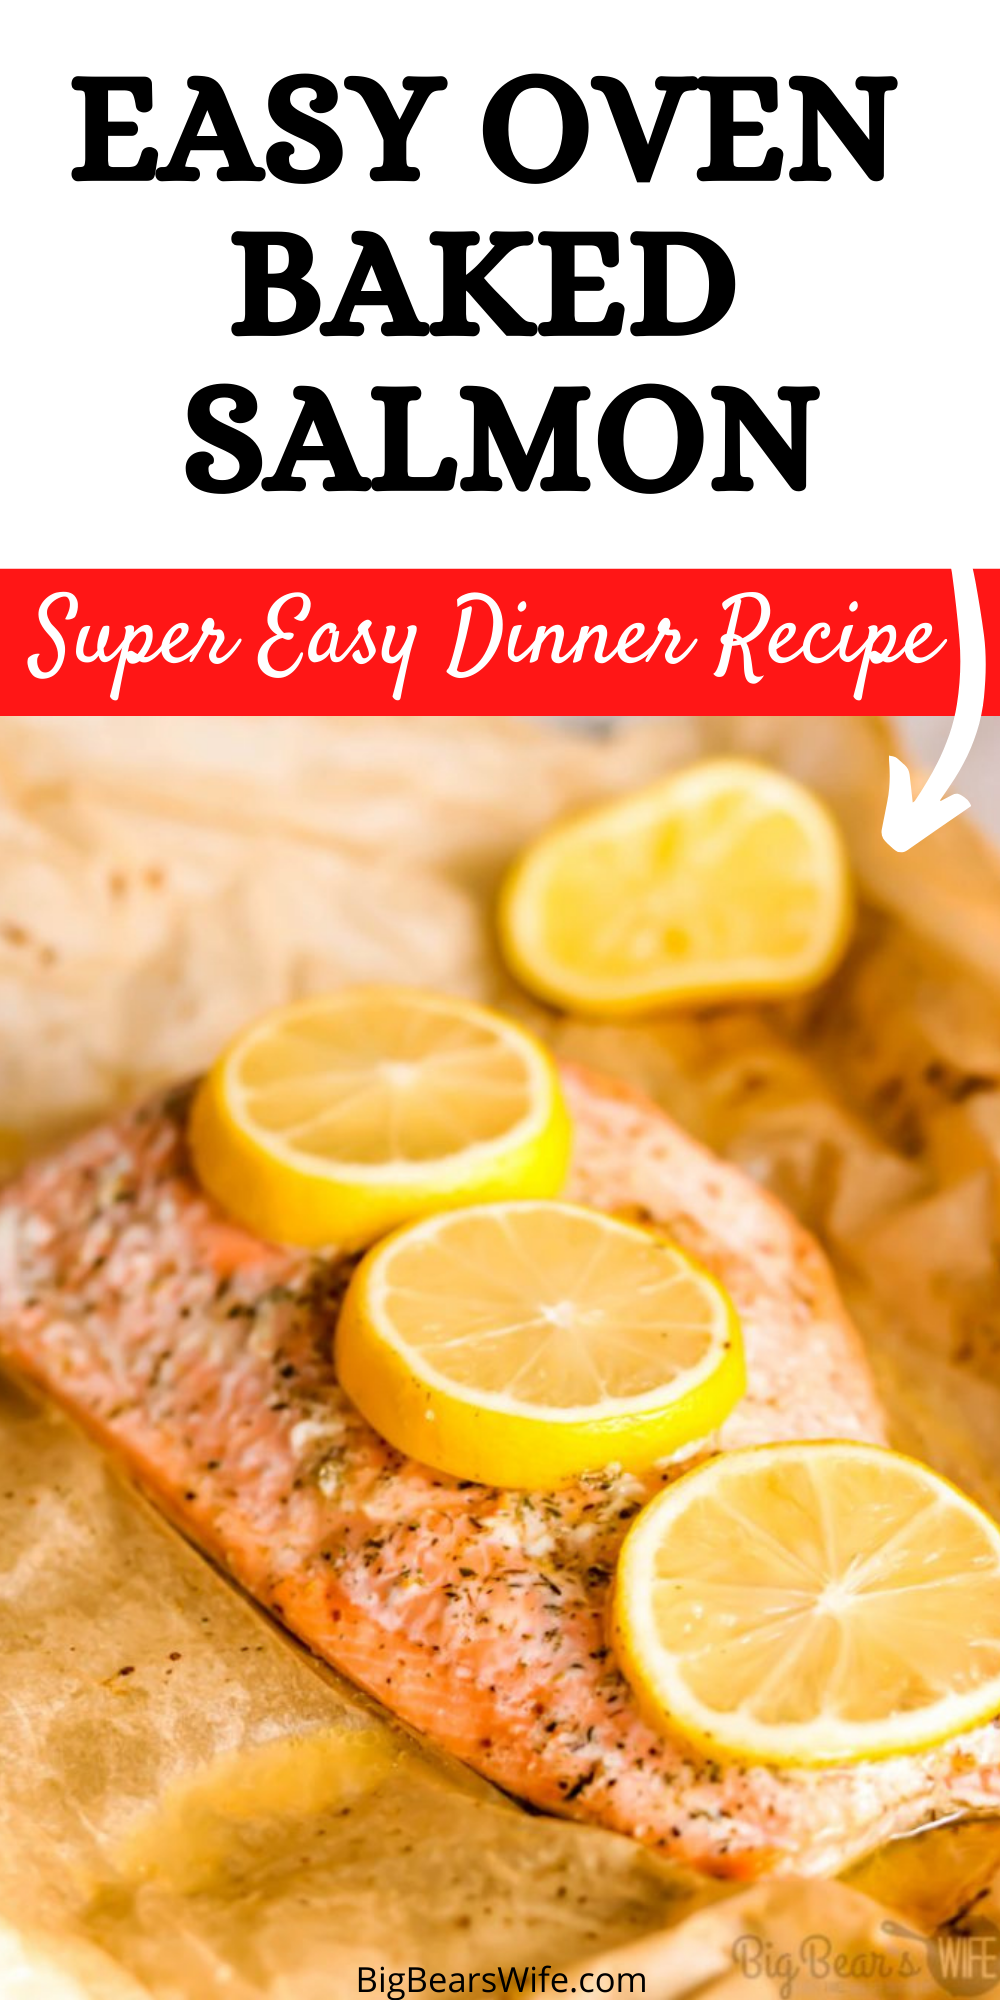 Dinner in under 30 minutes! This recipe for Easy Mediterranean Seasoned Parchment Paper Salmon is quick to make and easy to adapt for all kinds of different seasonings. via @bigbearswife